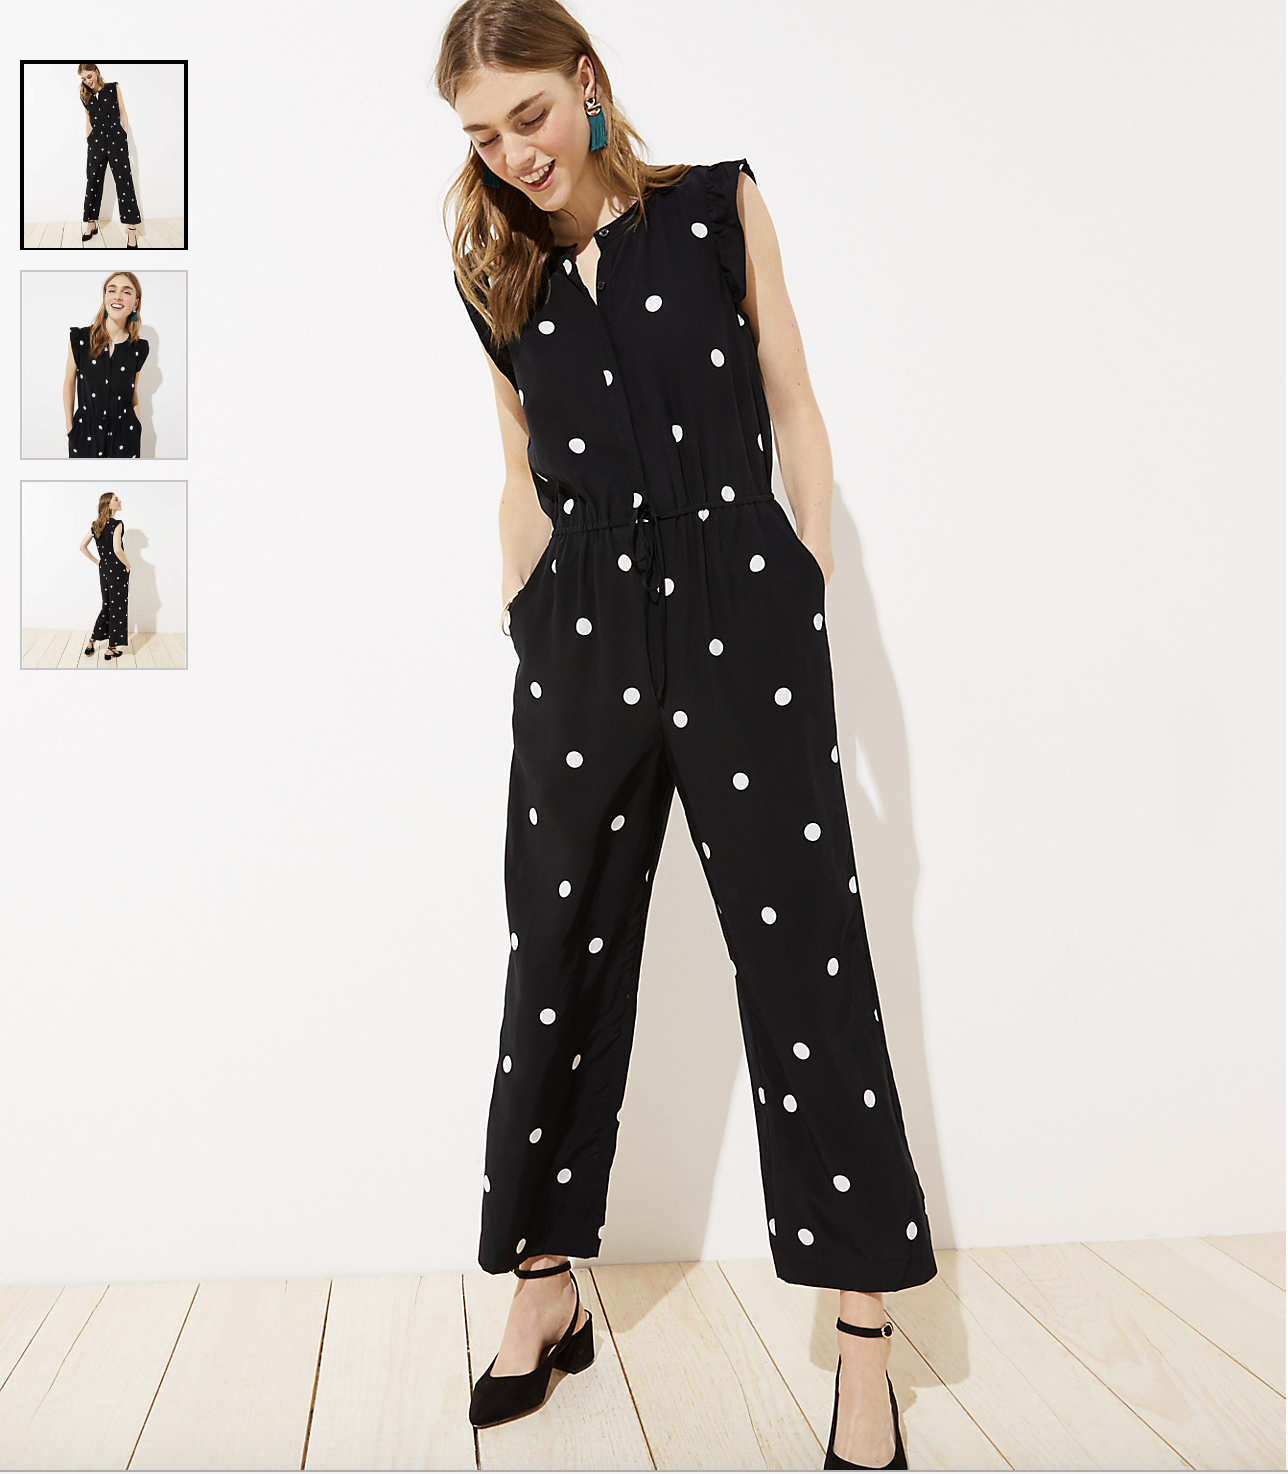 I Heart Jumpsuits - see some of the most flattering ones kellyelko.com #jumpsuits #spring #clothes #wardrobestaples